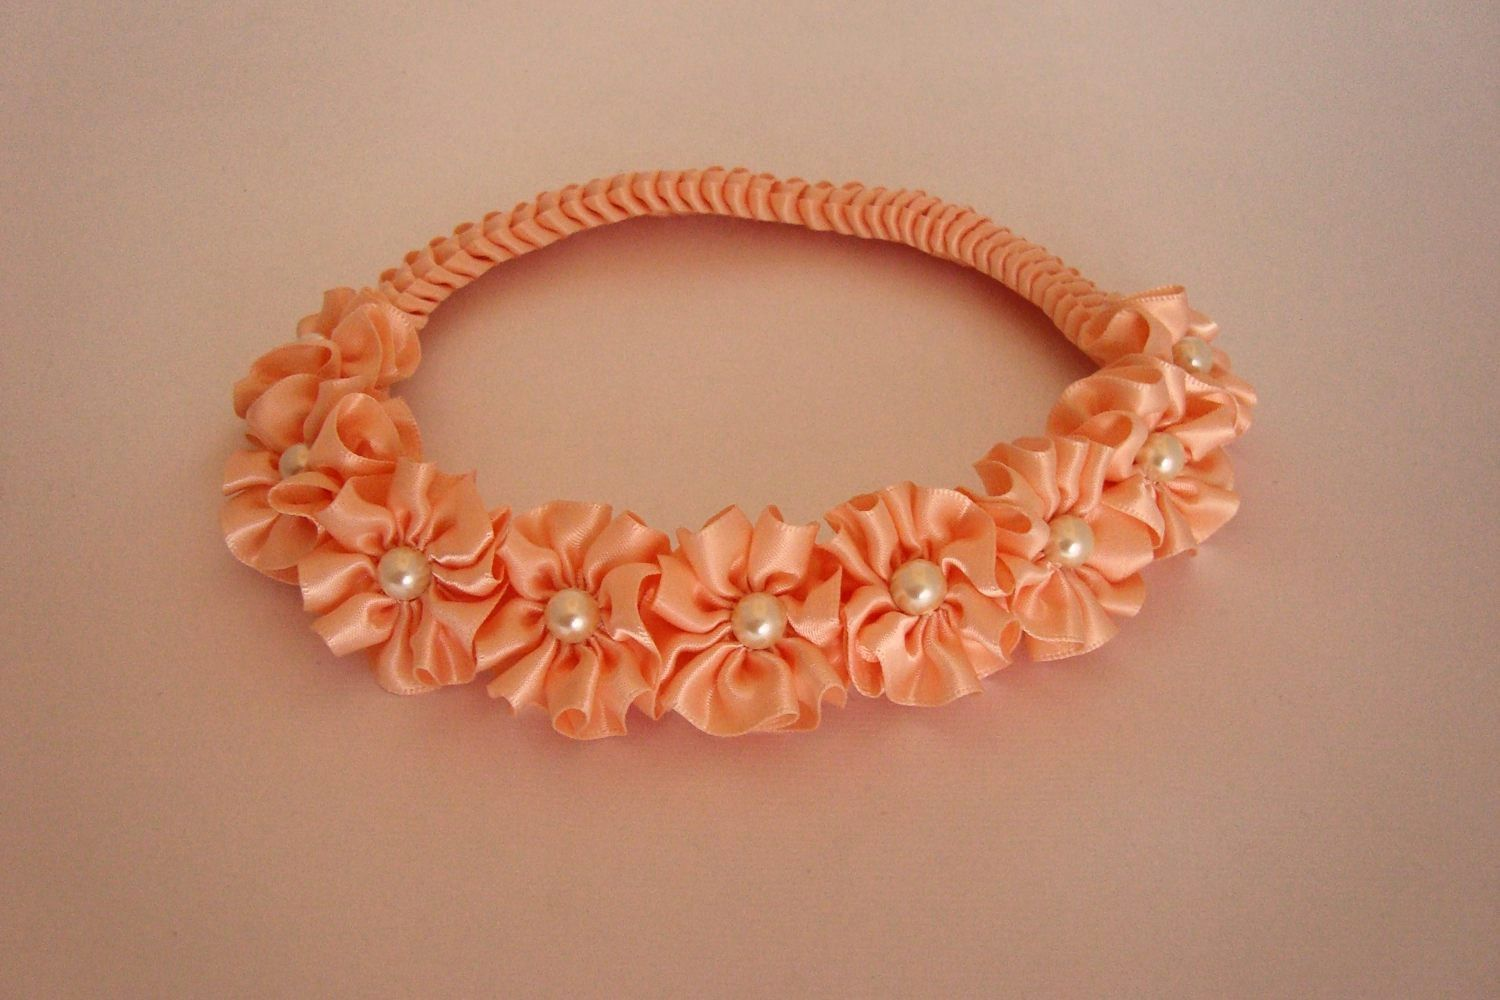 Peach Flower Girl Crown Wreath Braided Headband by PrettyToppings